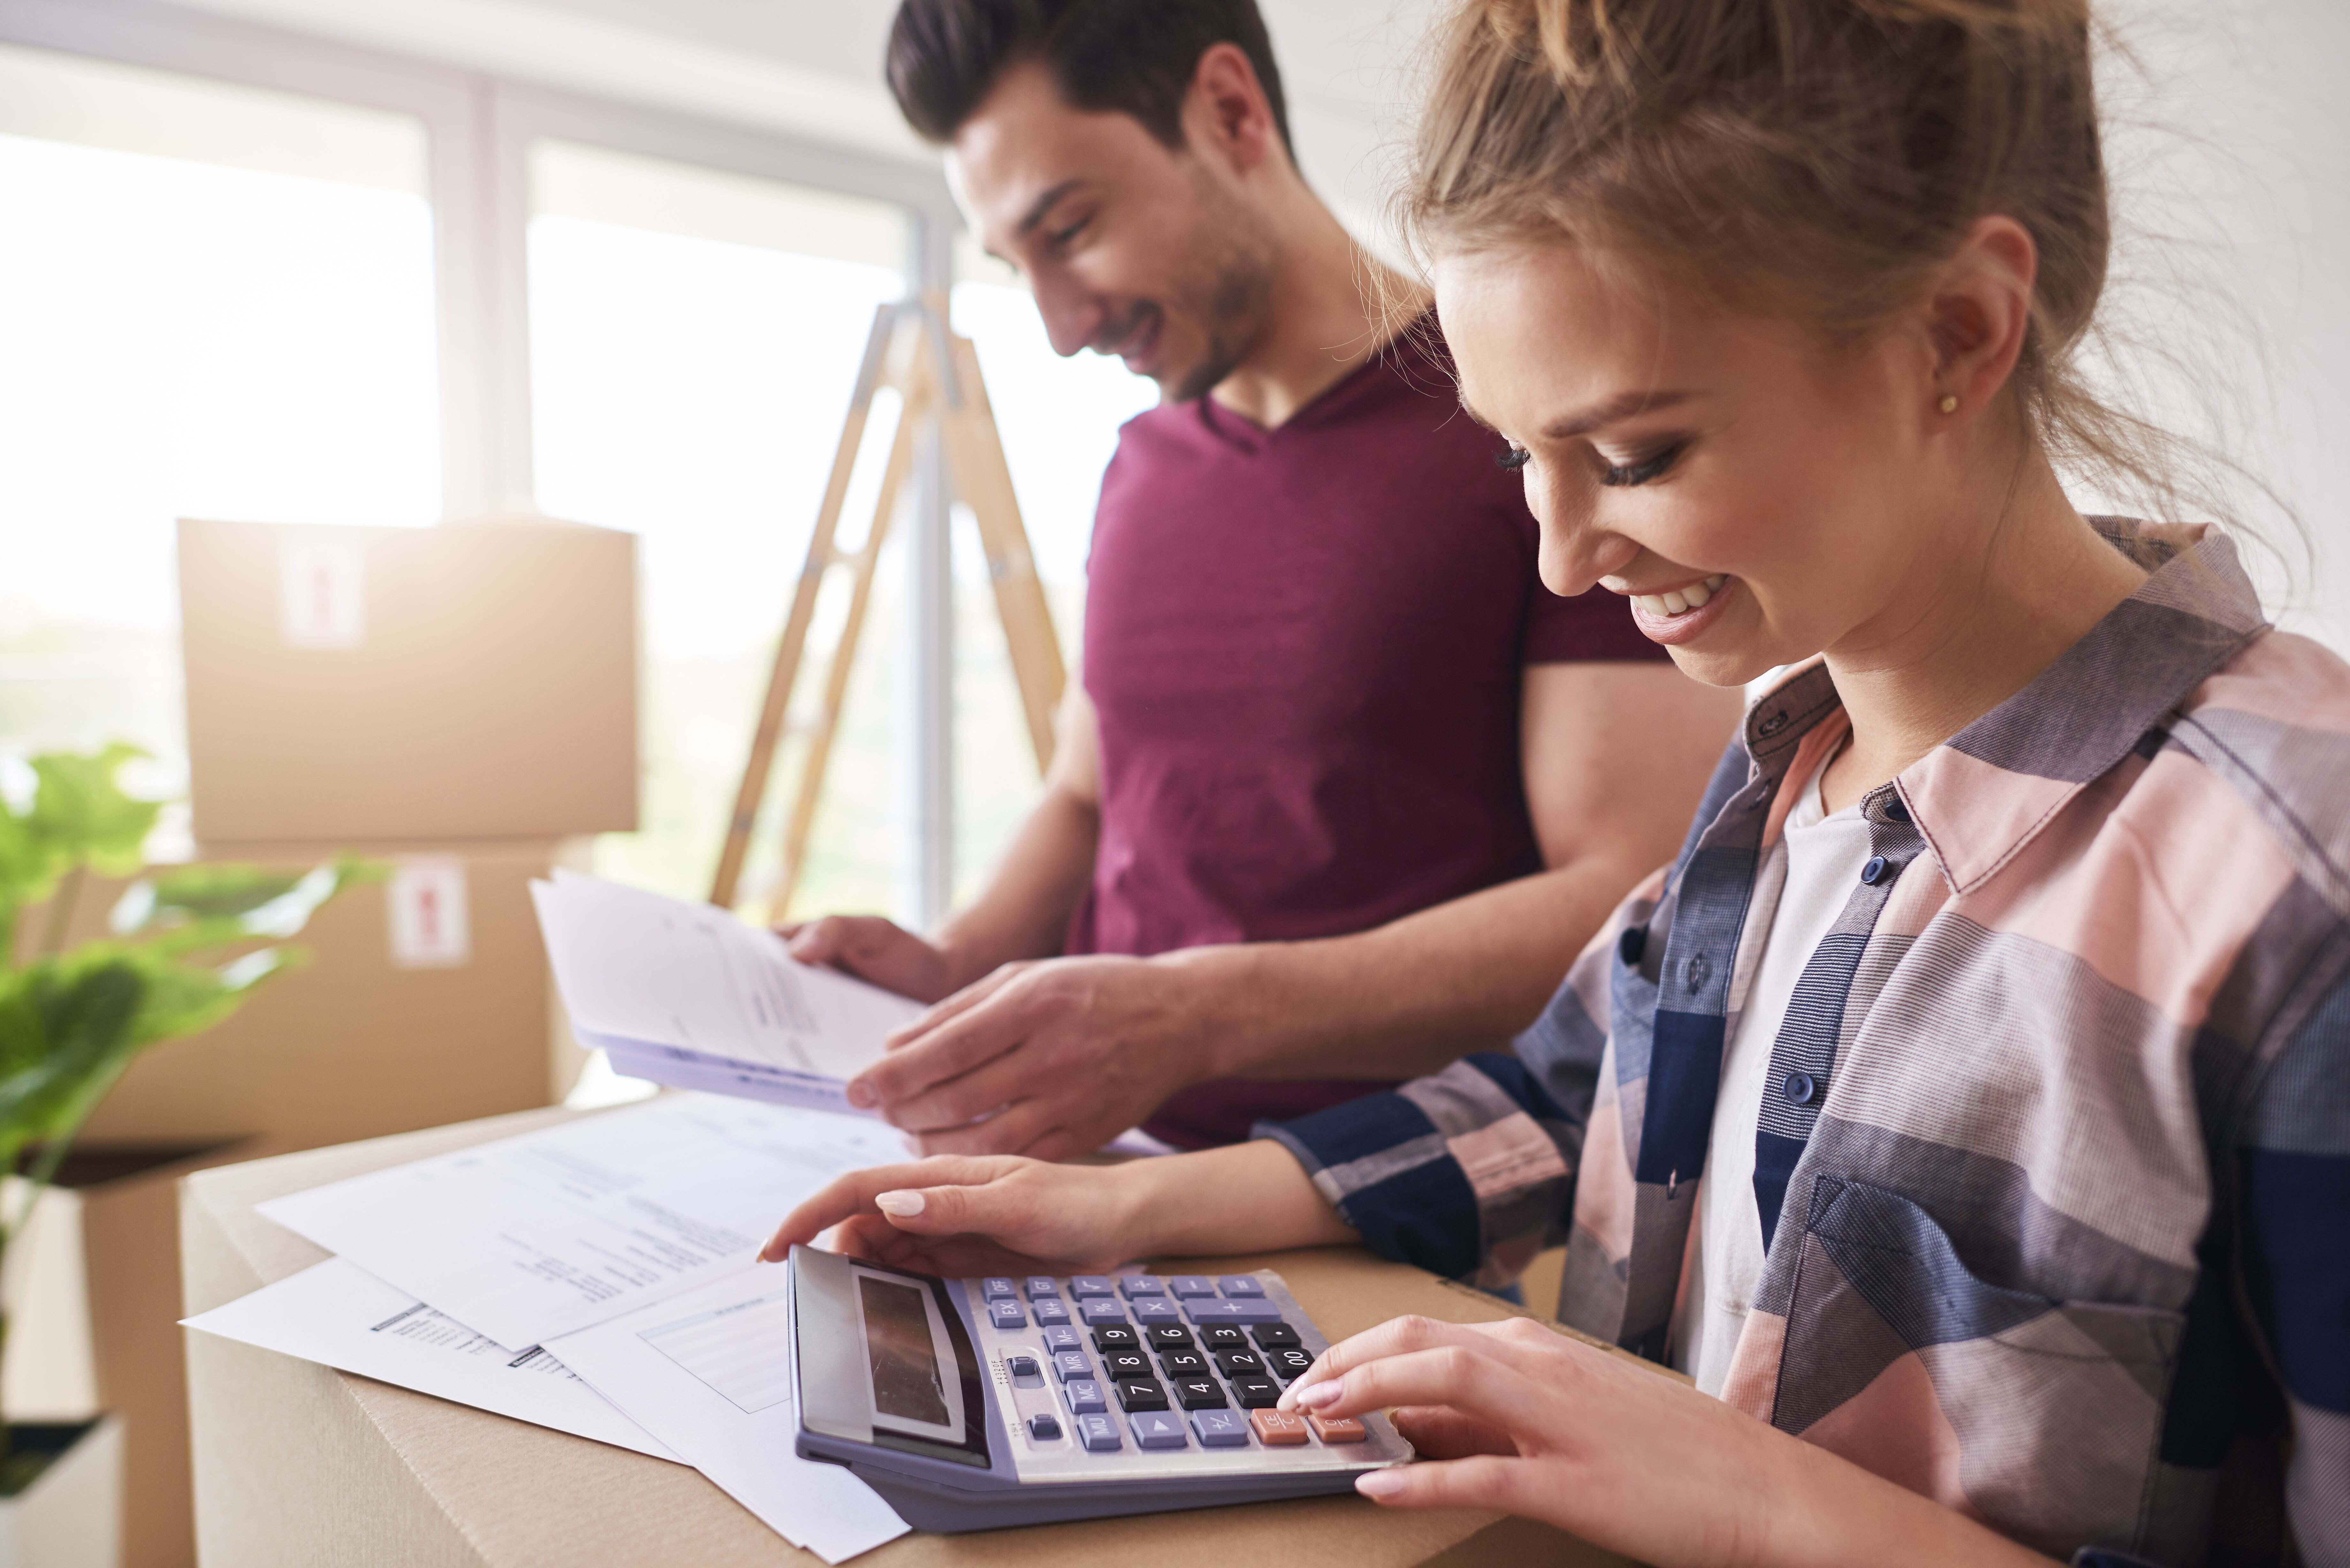 A couple going over their finances with a calculator